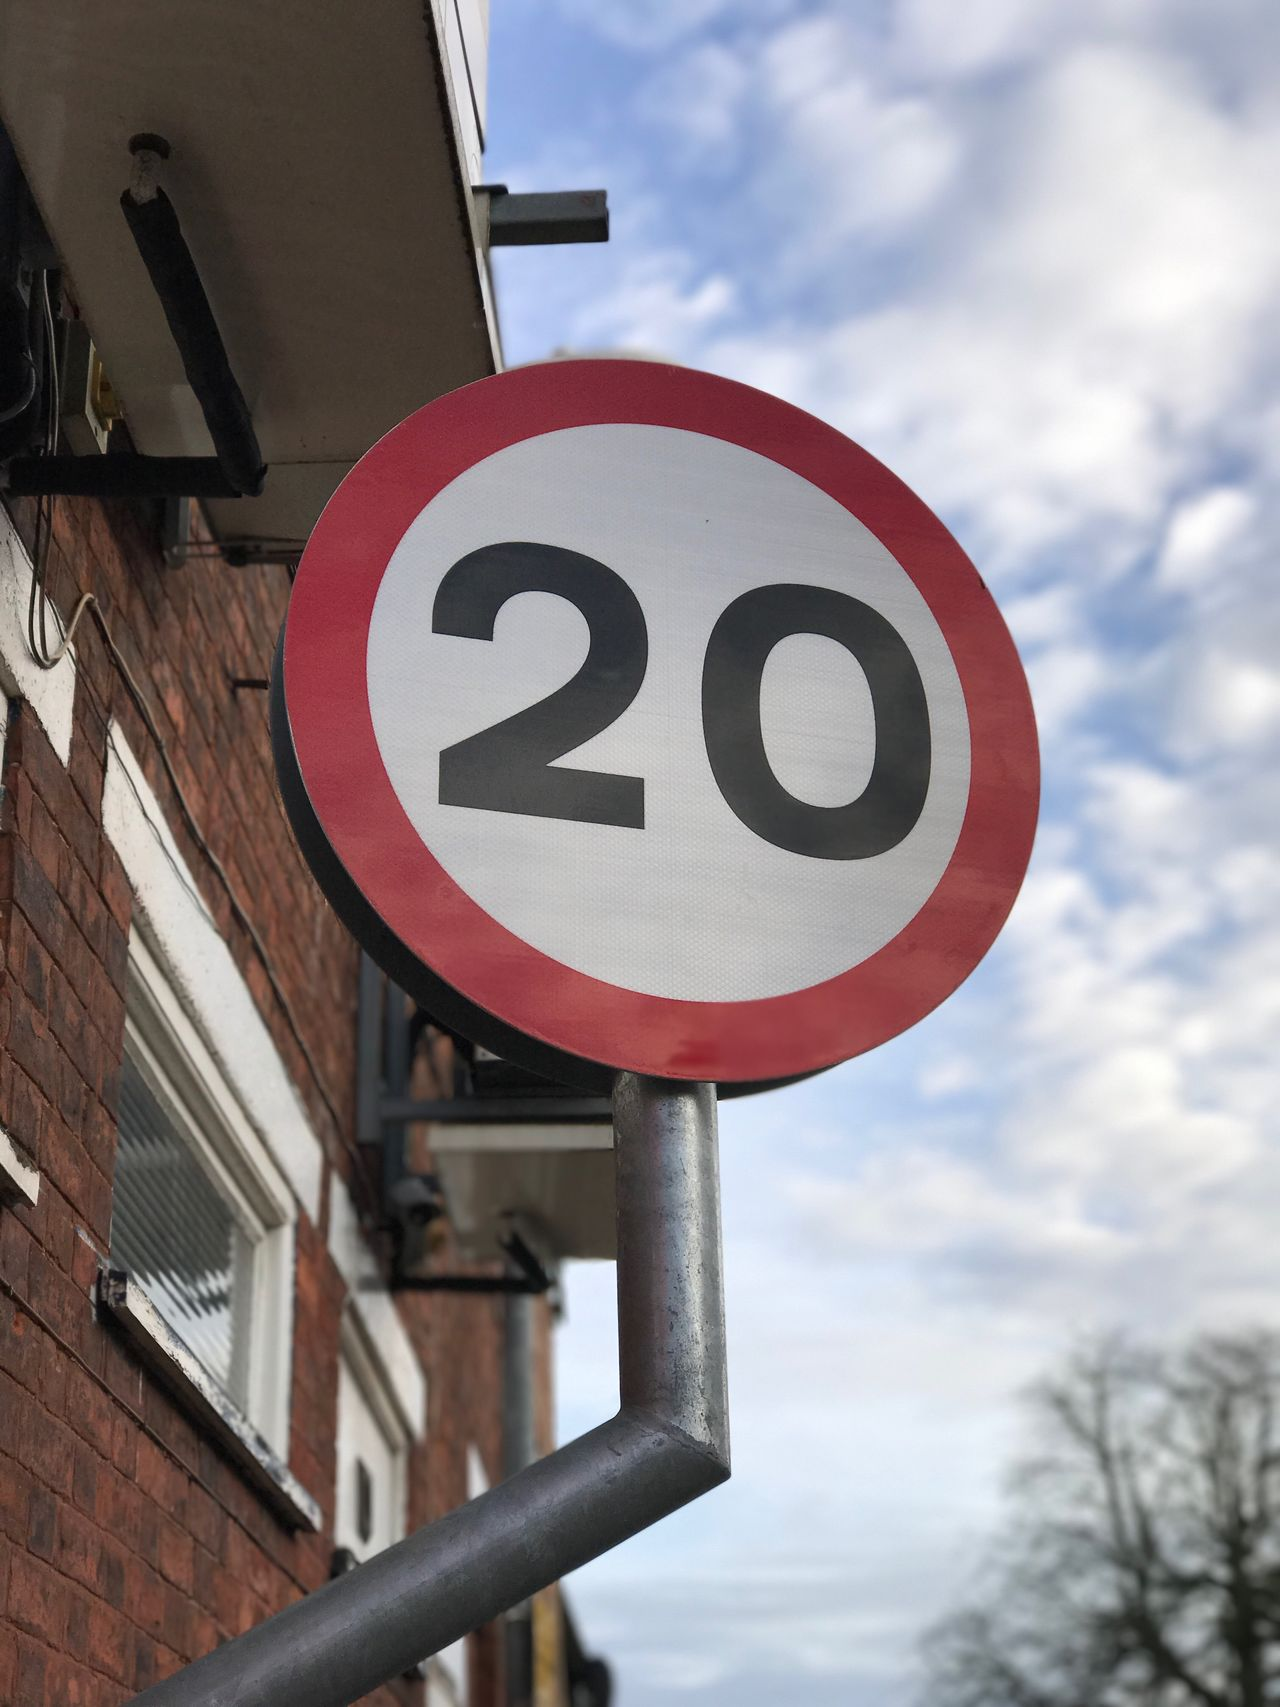 20. Building Exterior Sky Road Sign Architecture No People Outdoors Built Structure Low Angle View Speed Limit Sign Day Communication Text Close-up Eyeem Community IPhone7Plus EyeEm Gallery Blurred Background EyeEm Speed Limit EyeEm Best Shots Signs EyeEm Masterclass Iphone7plusphoto Getty X EyeEm Urban